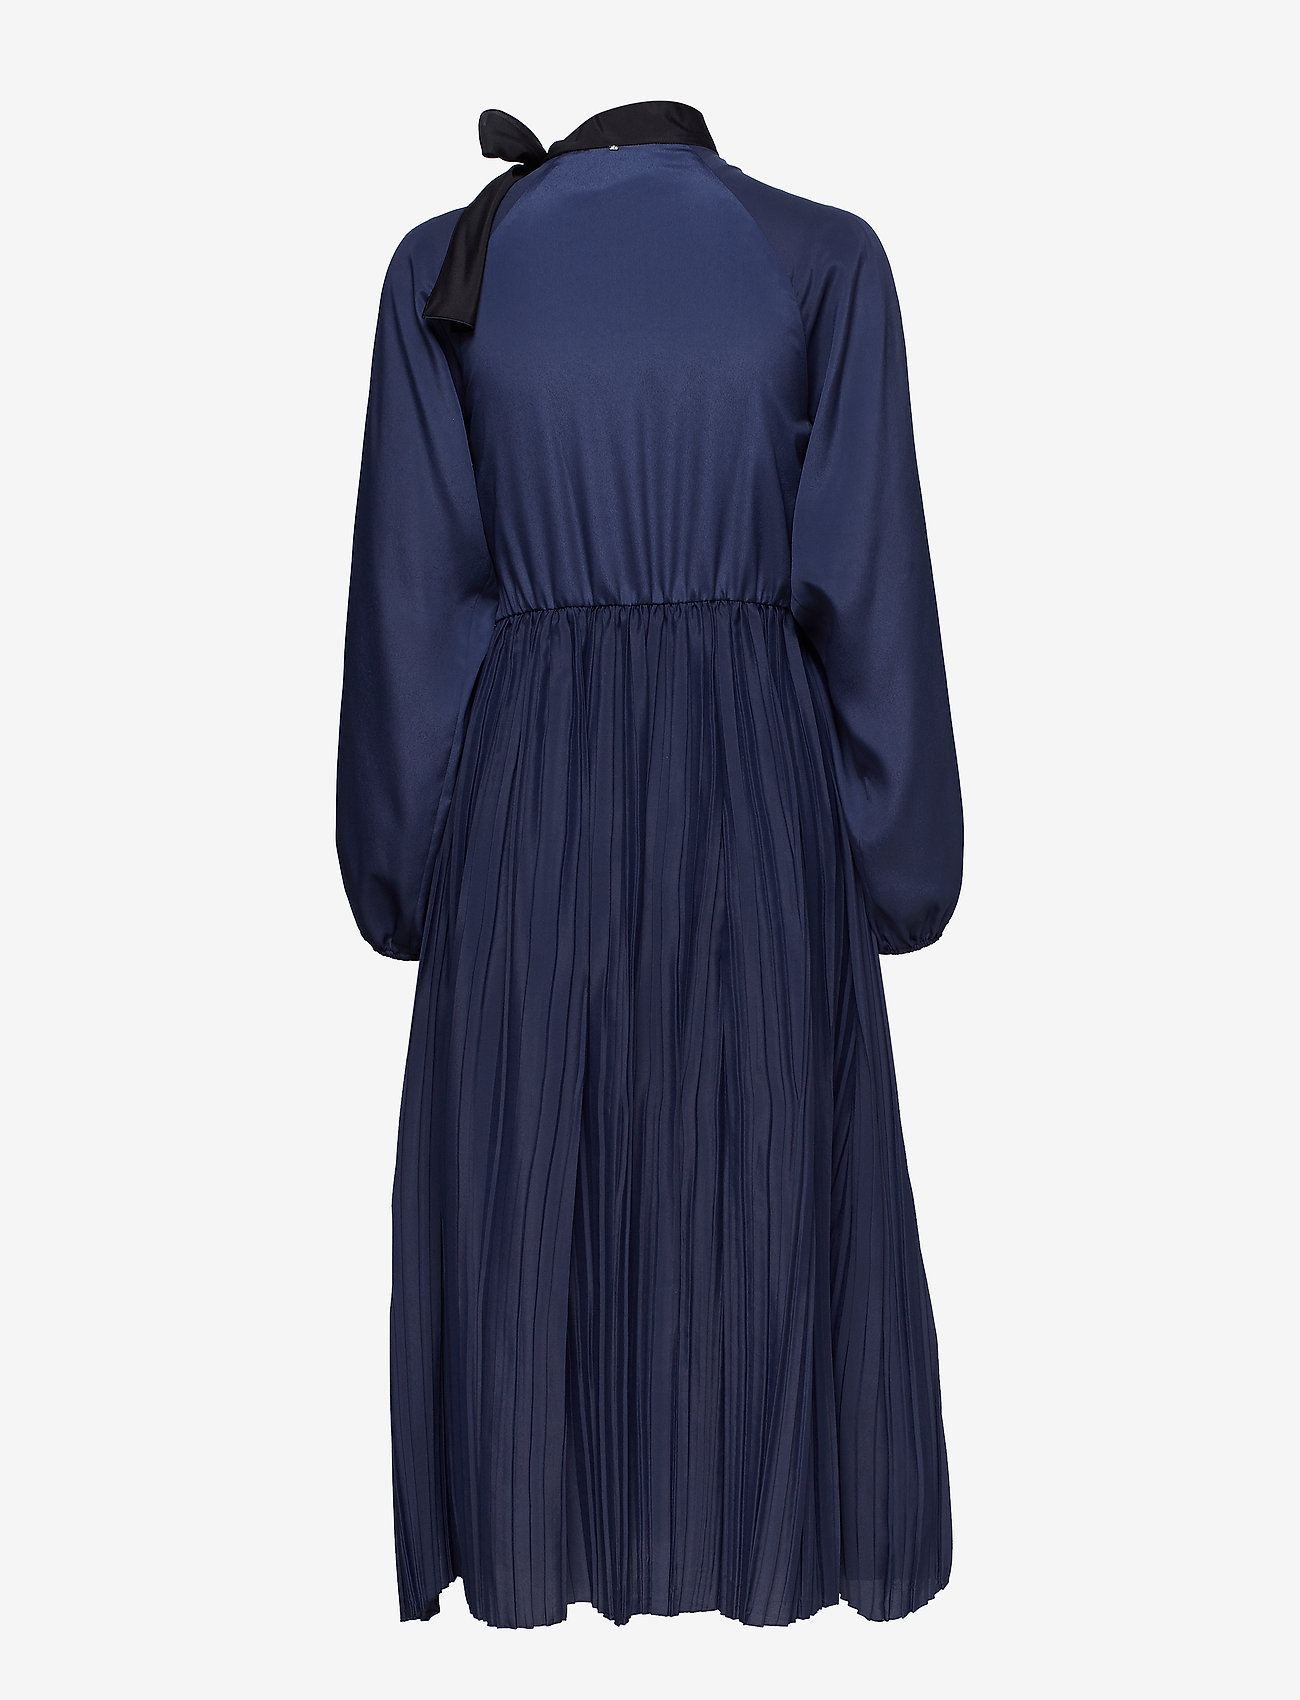 Sportmax Code ODEON - Dresses NAVY DRESS